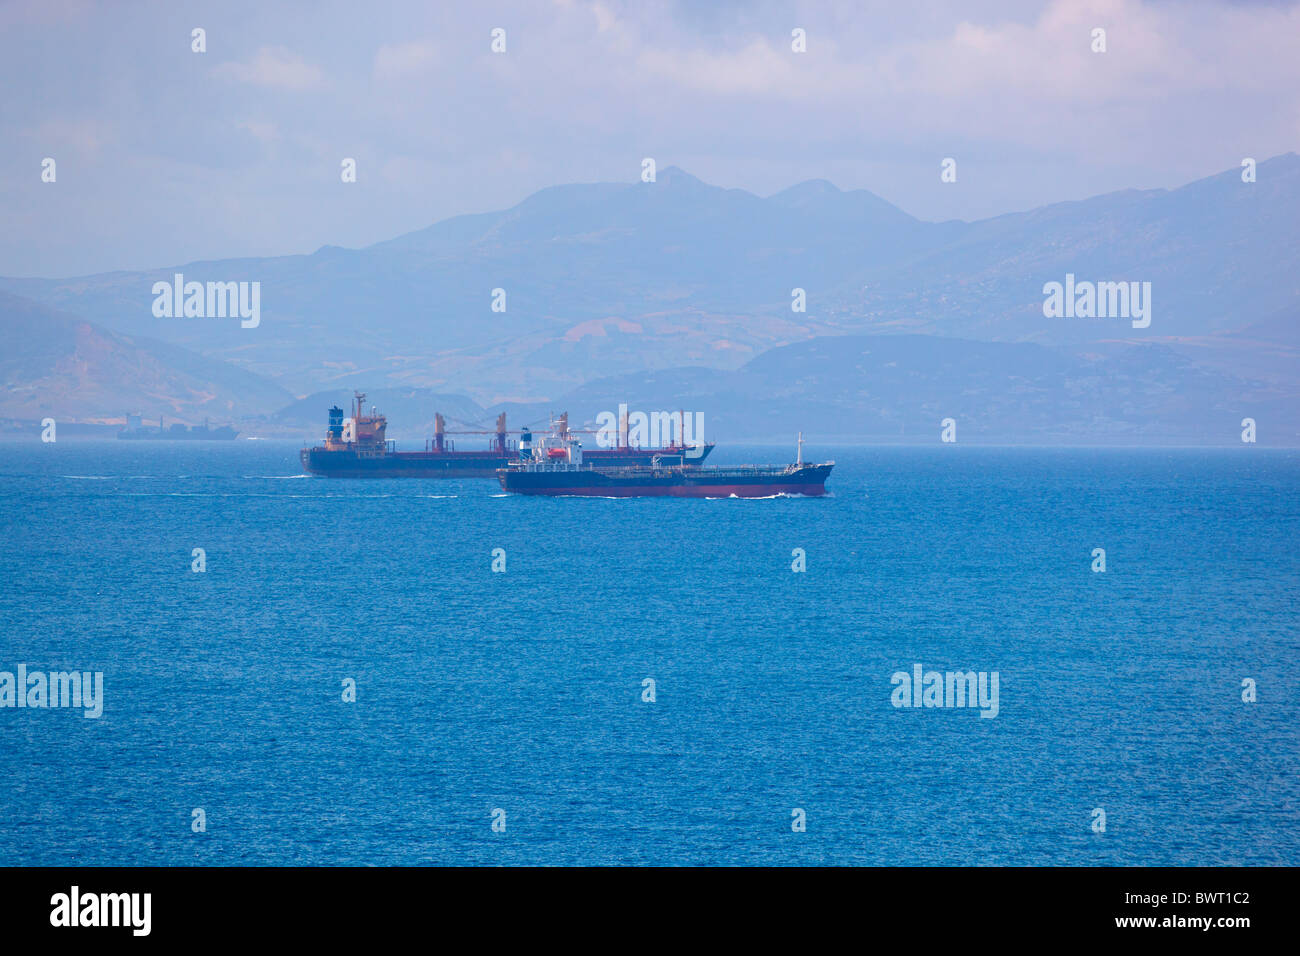 Cargo ships passing through the Straits of Gibraltar between Spain and Morocco. Morocco is seen in the background. - Stock Image